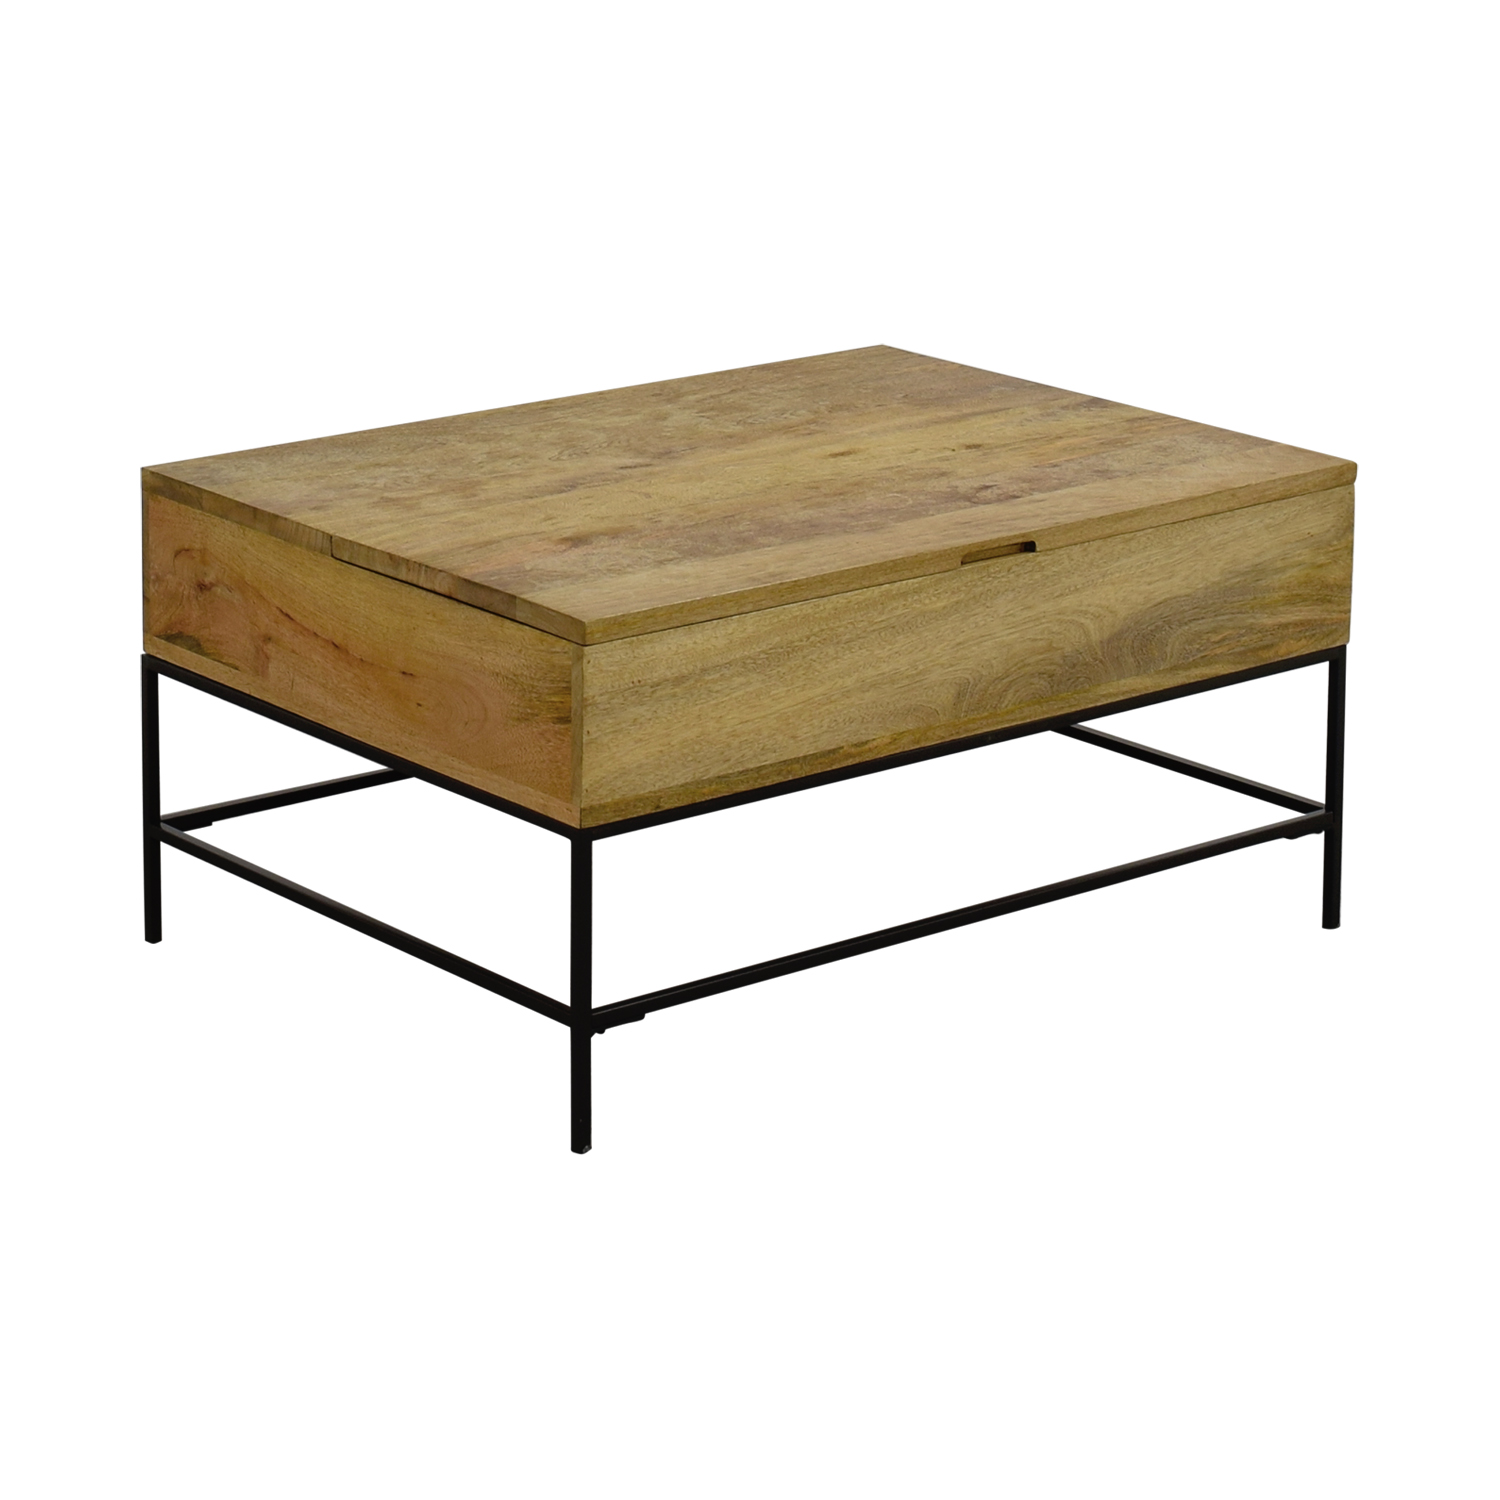 West Elm Stone Top Coffee Table: West Elm West Elm Rustic Wood Coffee Table / Tables